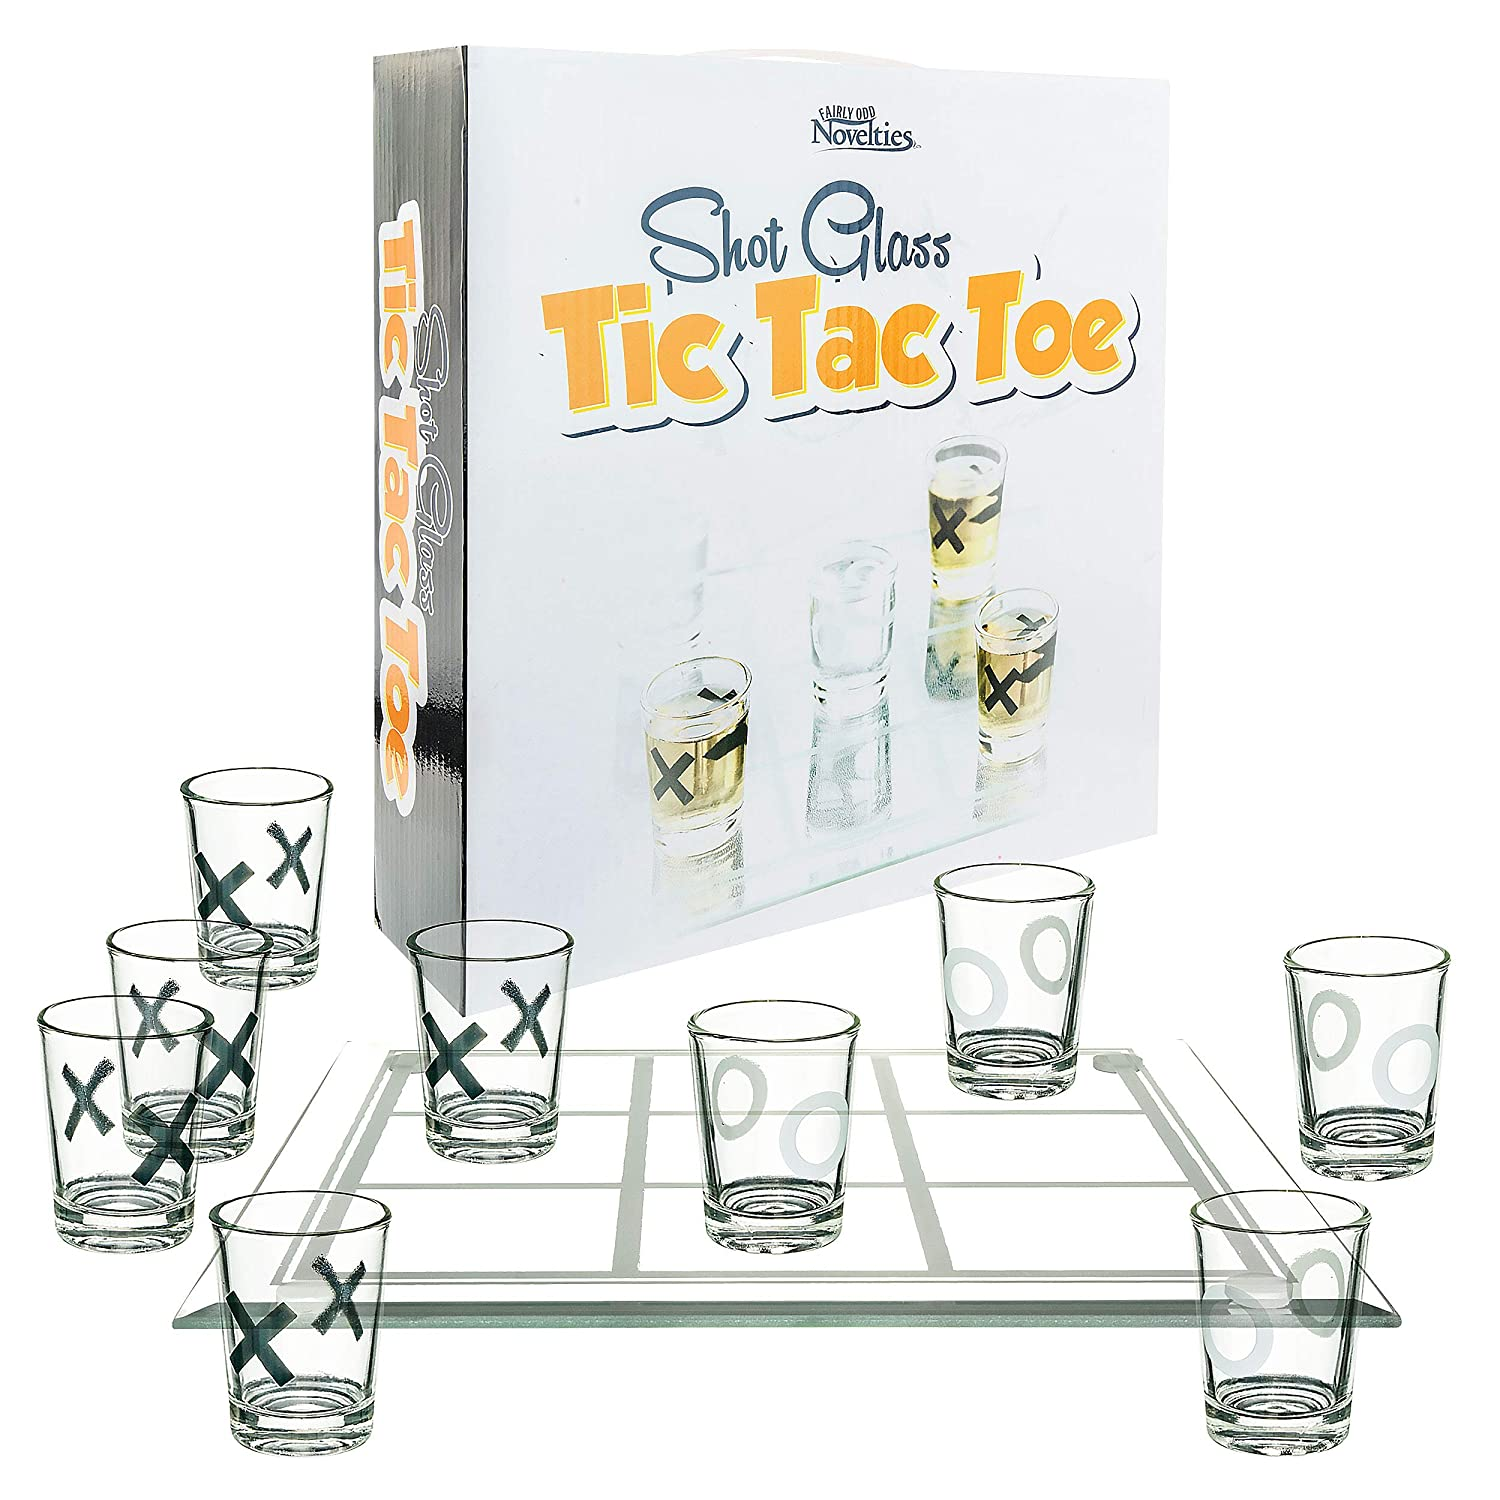 Fairly Odd Novelties SHOT GLASS TIC TAC TOE - Fun Drinking Board Game for Two or Couples Drinking Game Gag White Elephant Gift Party Games FON-10182